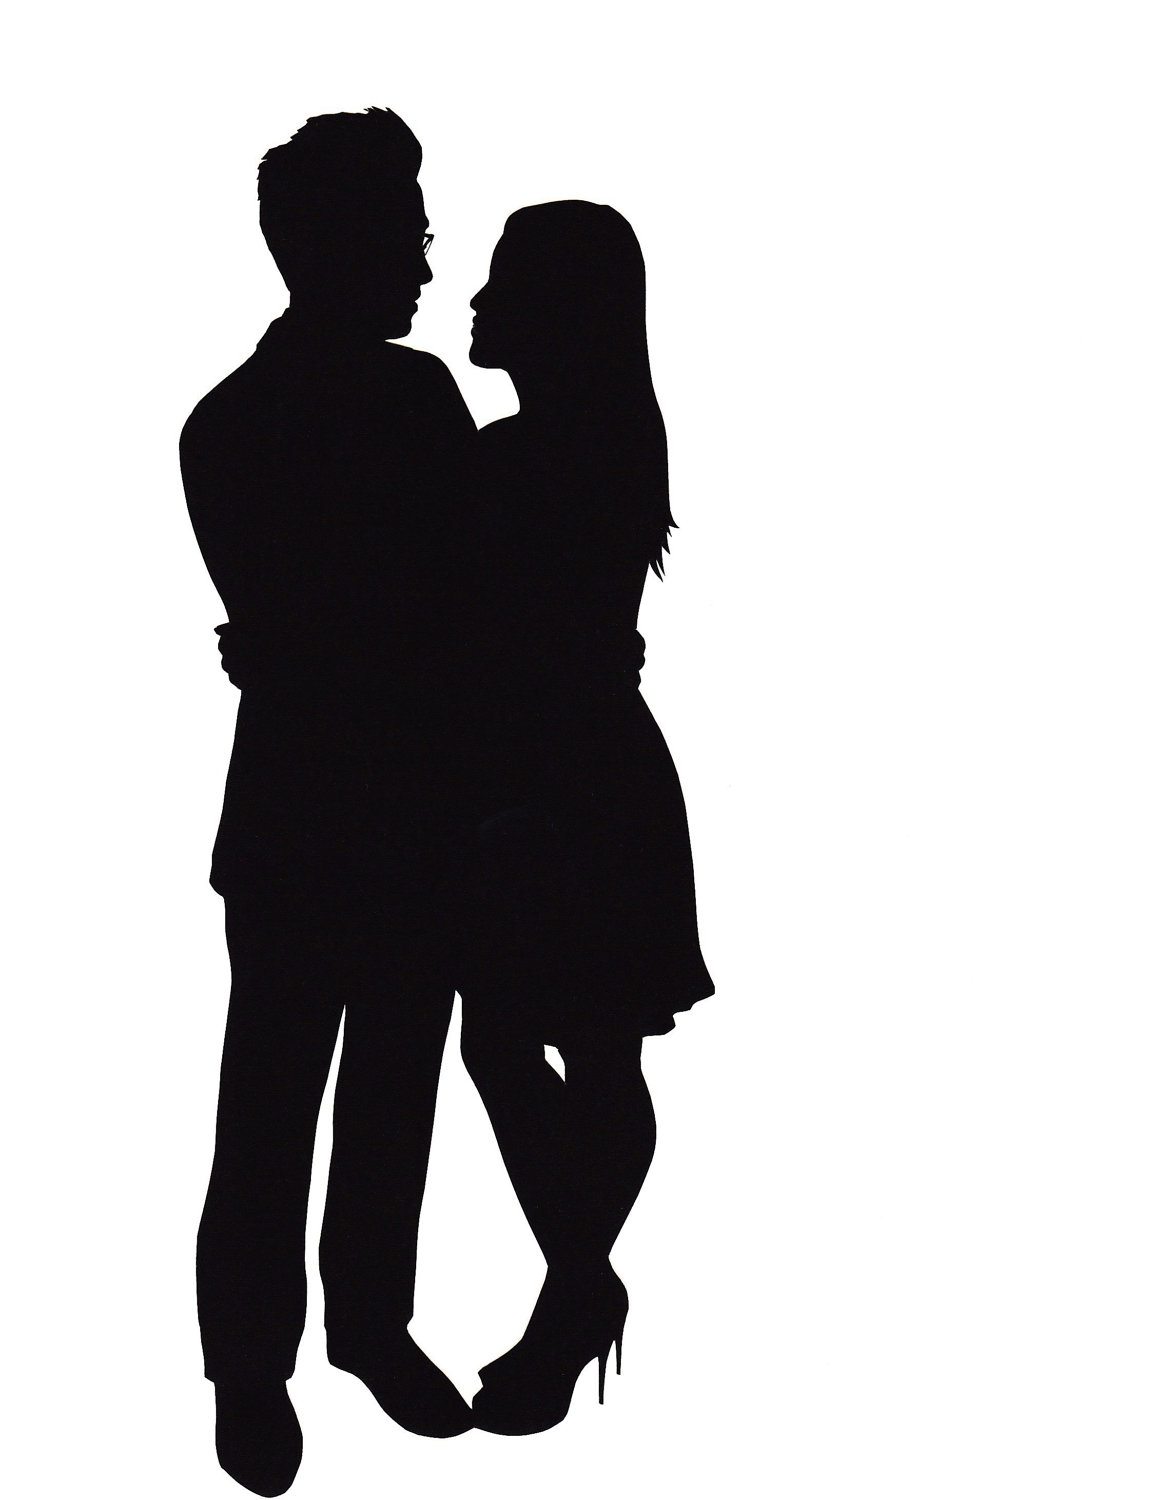 Shadow clipart couple. Silhouette of a kissing